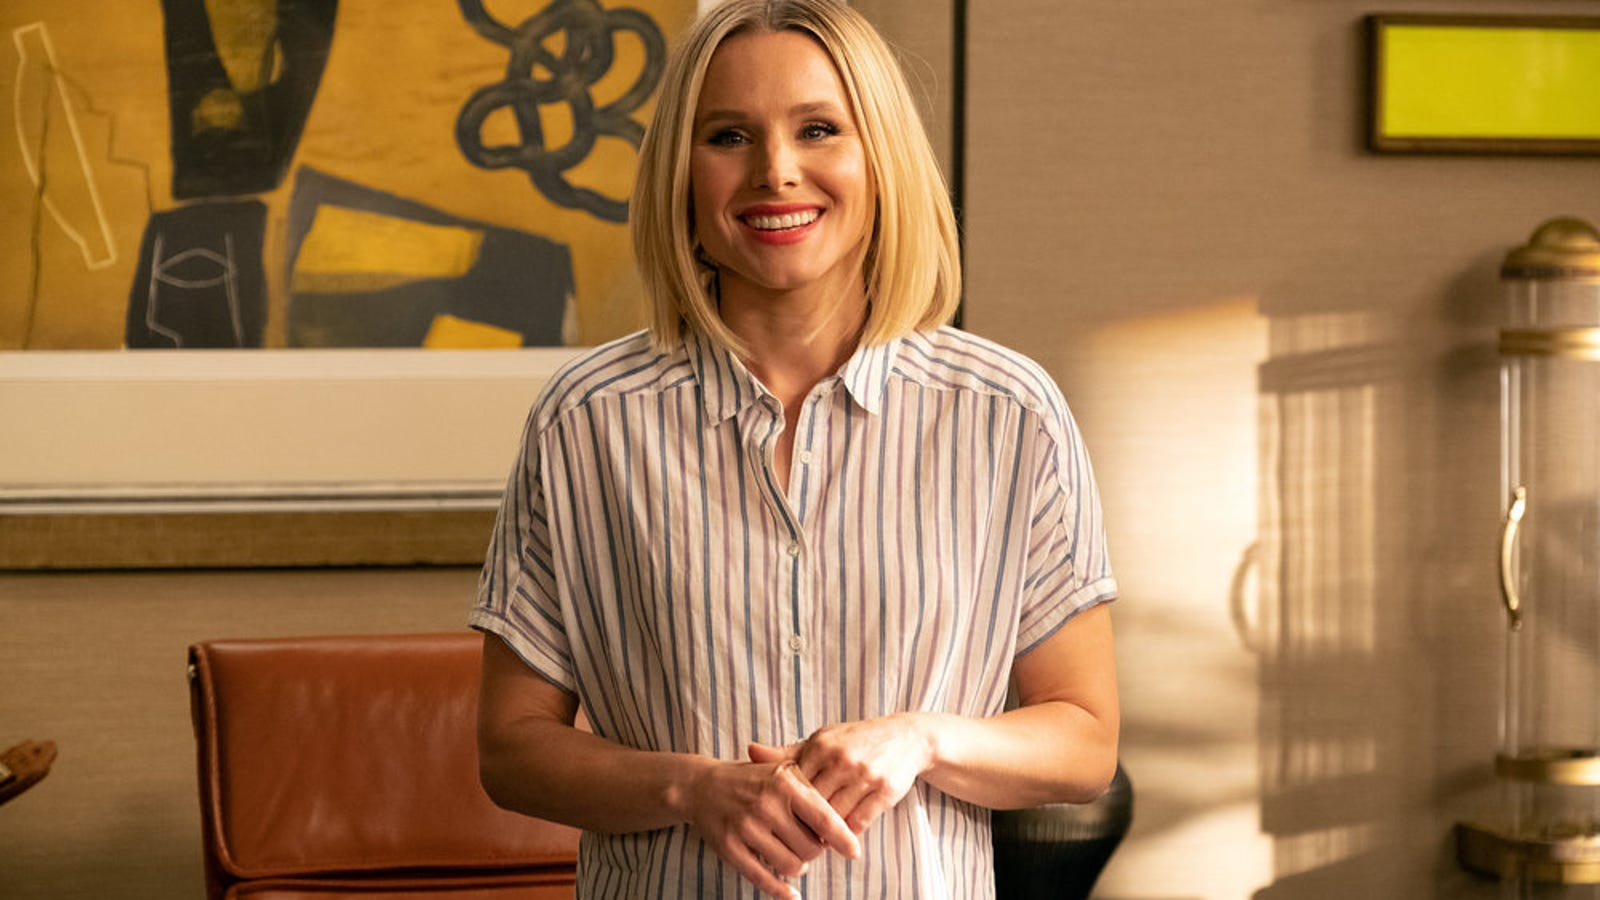 Eleanor doubts her fitness to lead on The Good Place